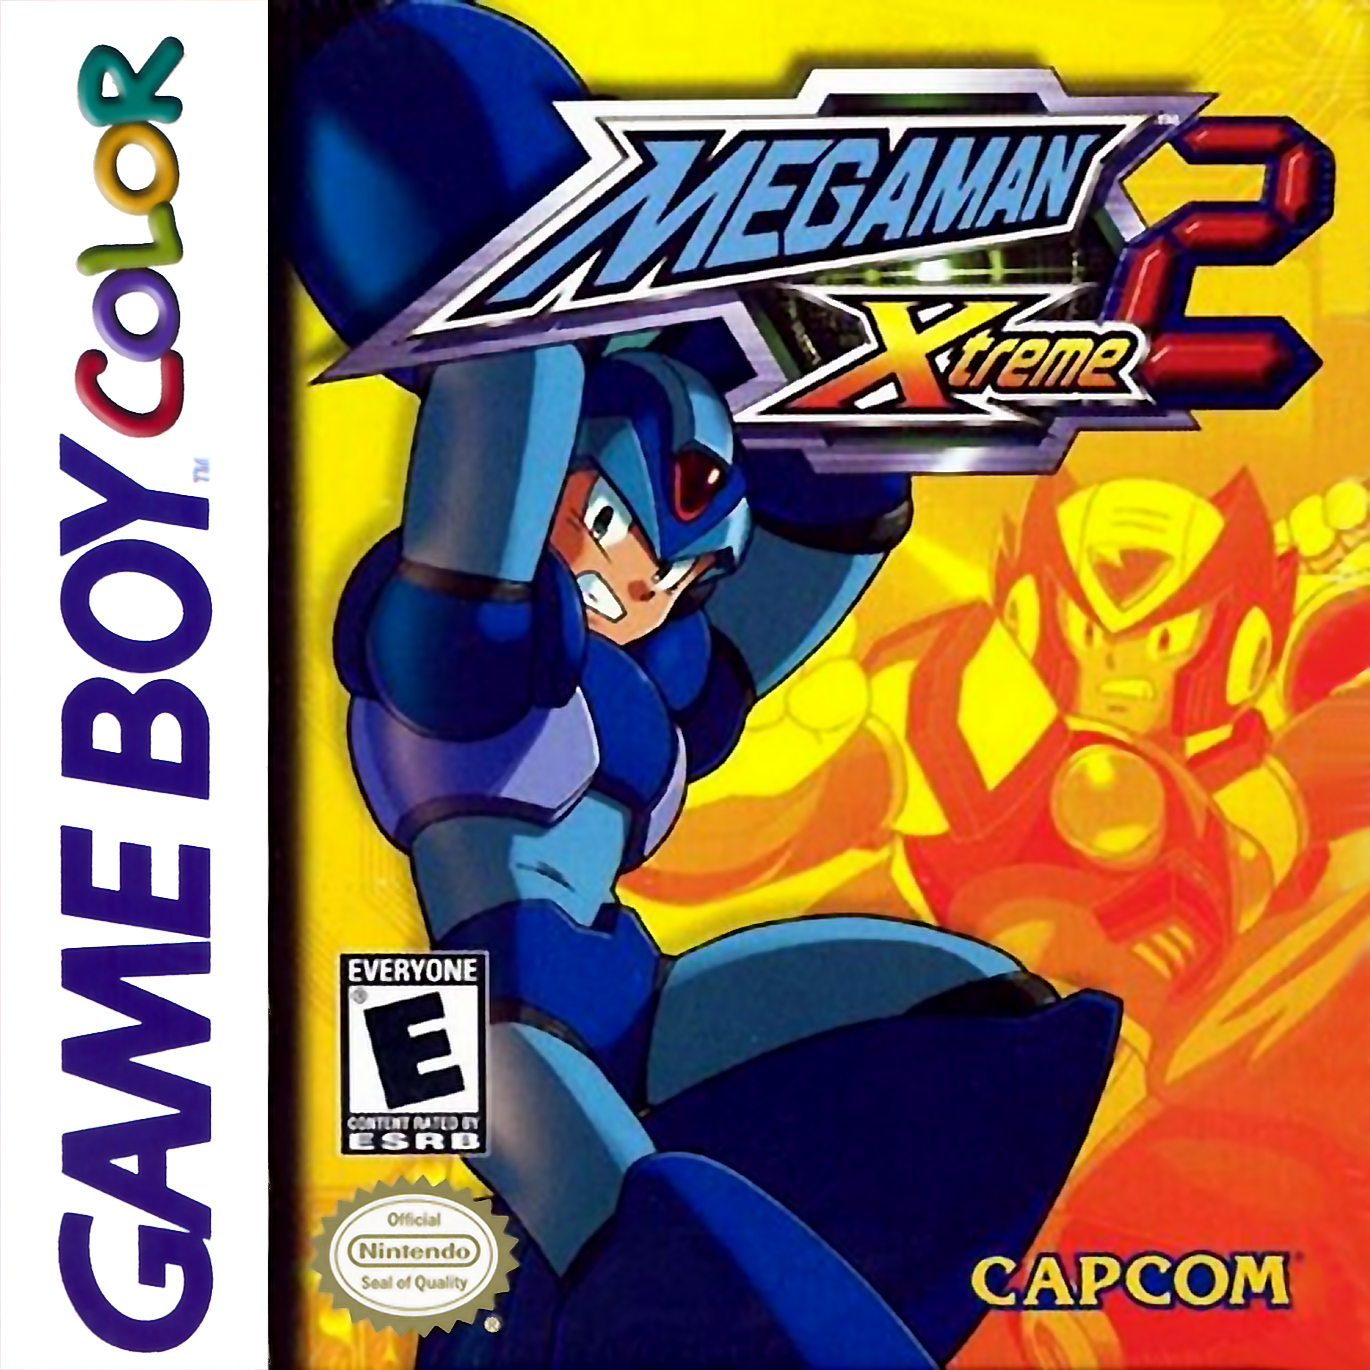 Mega Man Xtreme 2 Nintendo Game Boy Color cover artwork